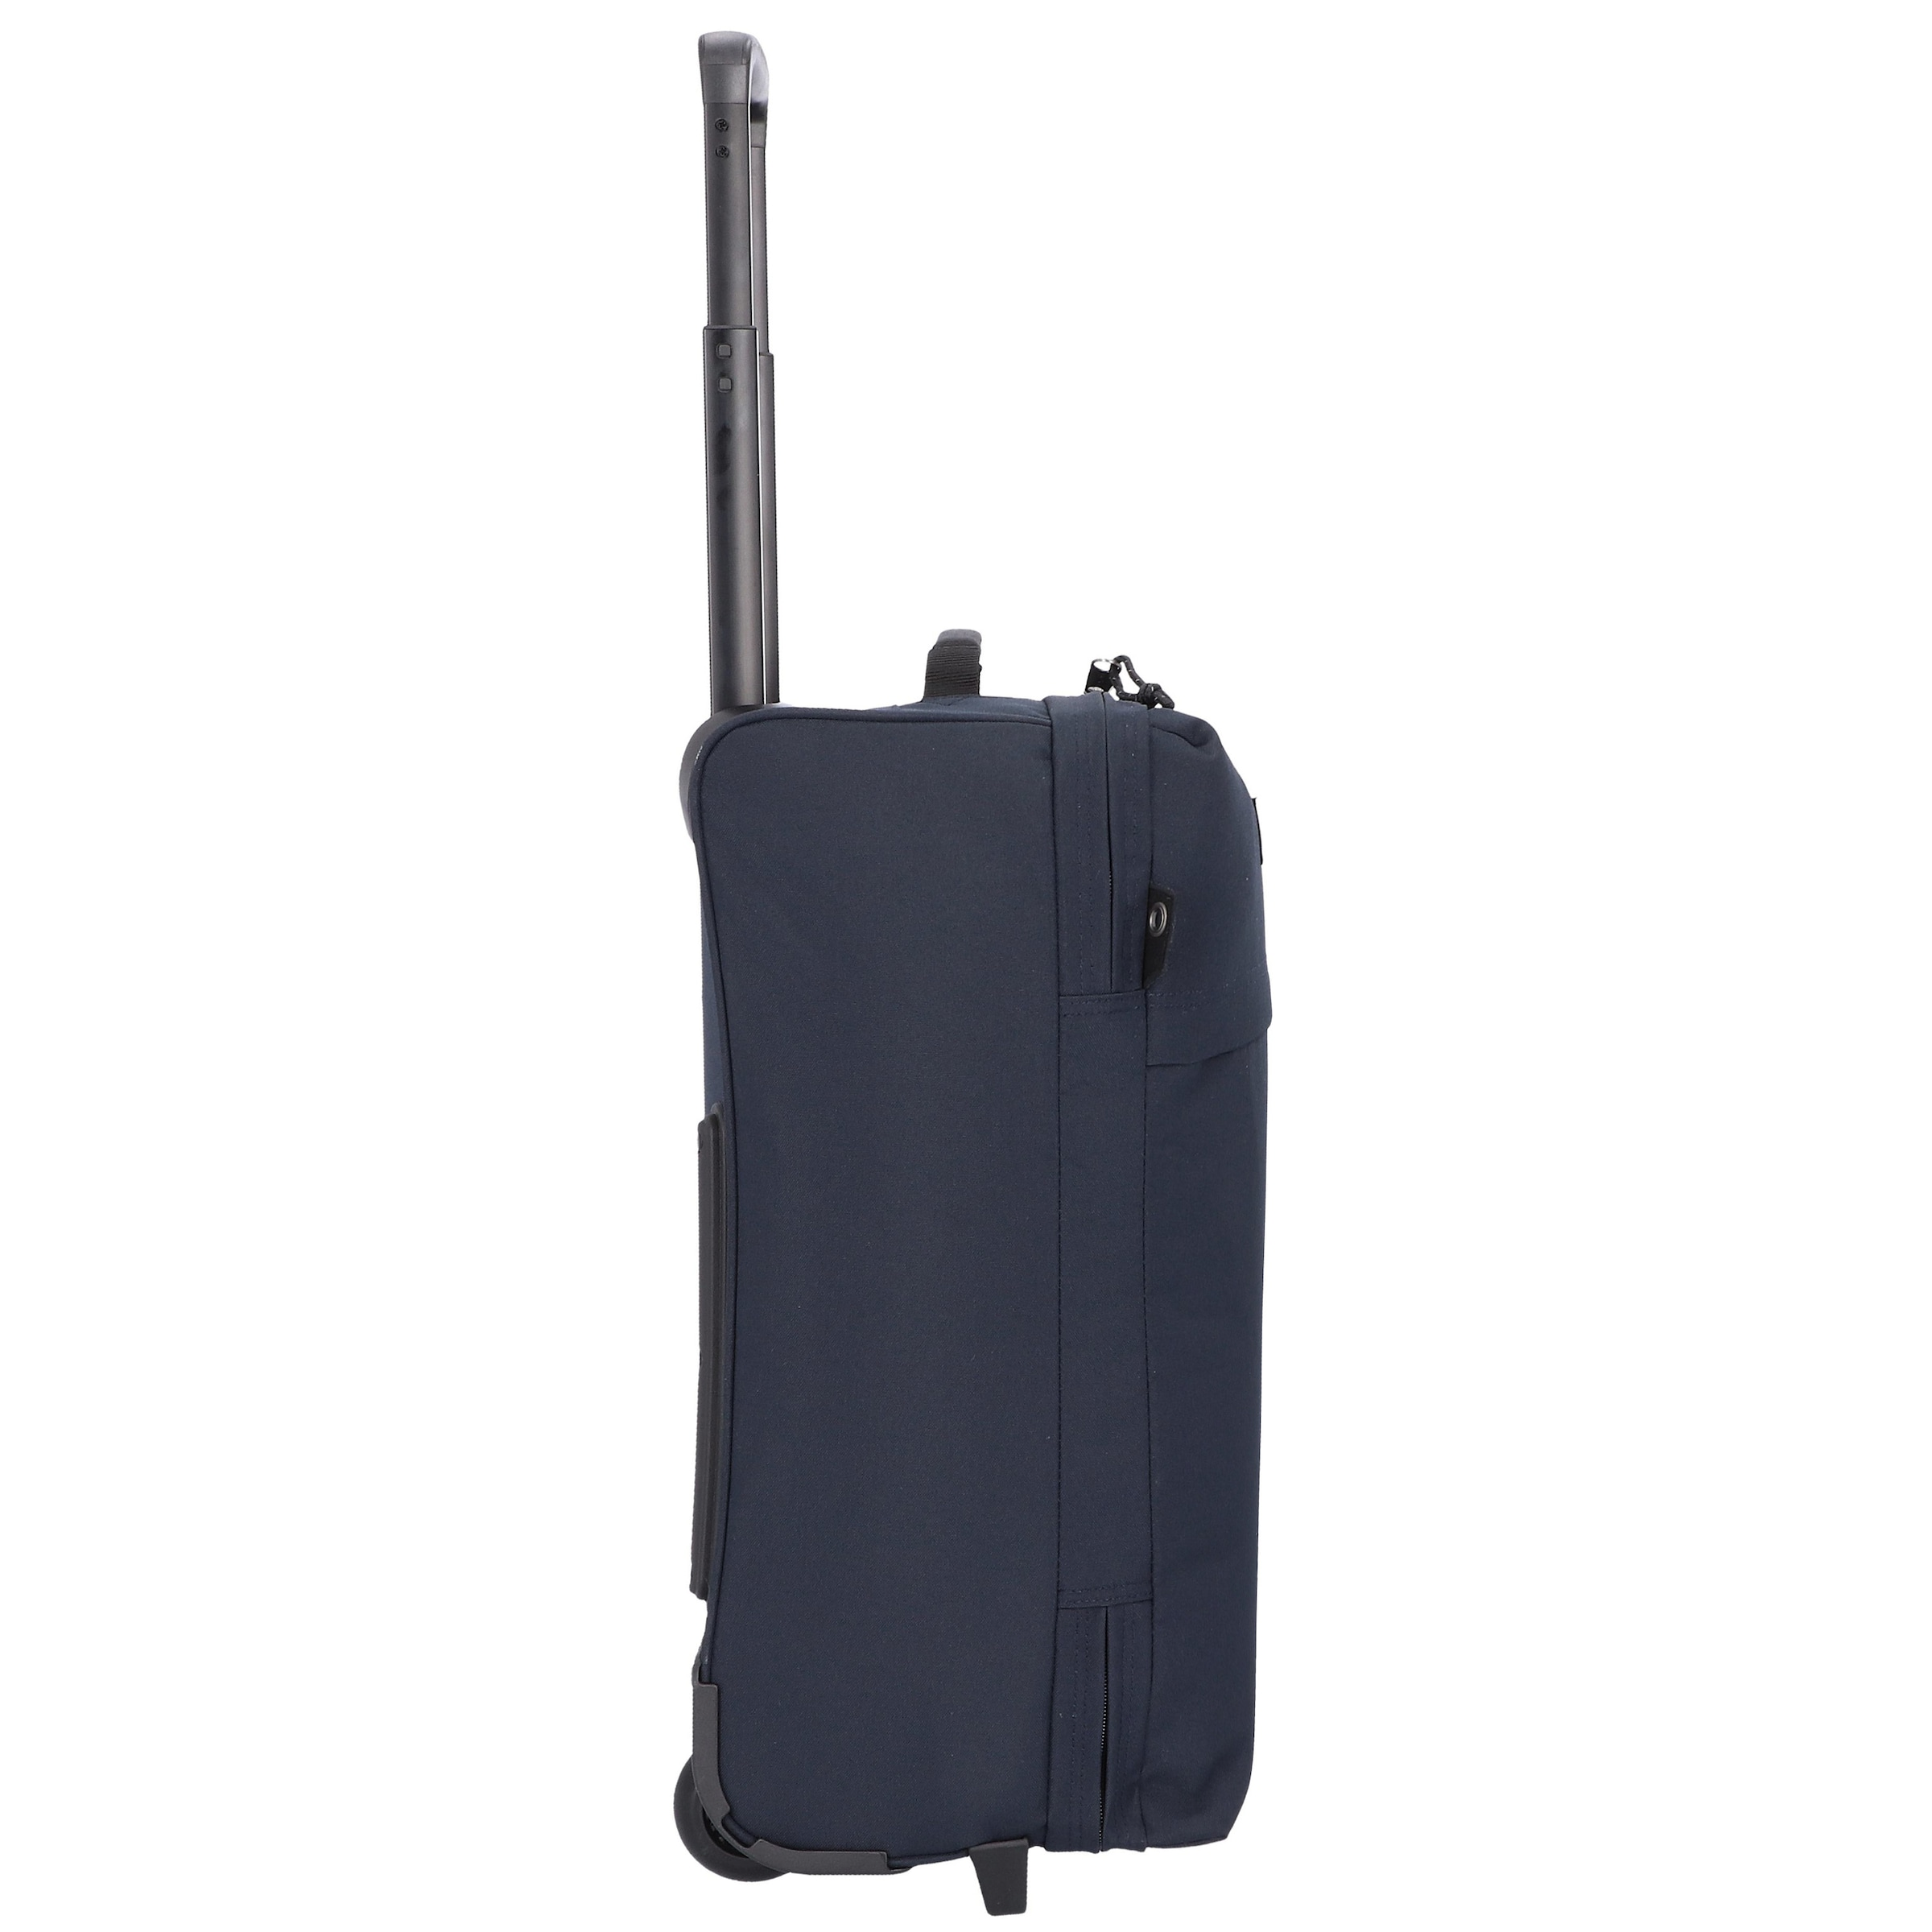 Nachtblau Light Trolley 'traf'ik Eastpak In S' 34jcq5ASRL